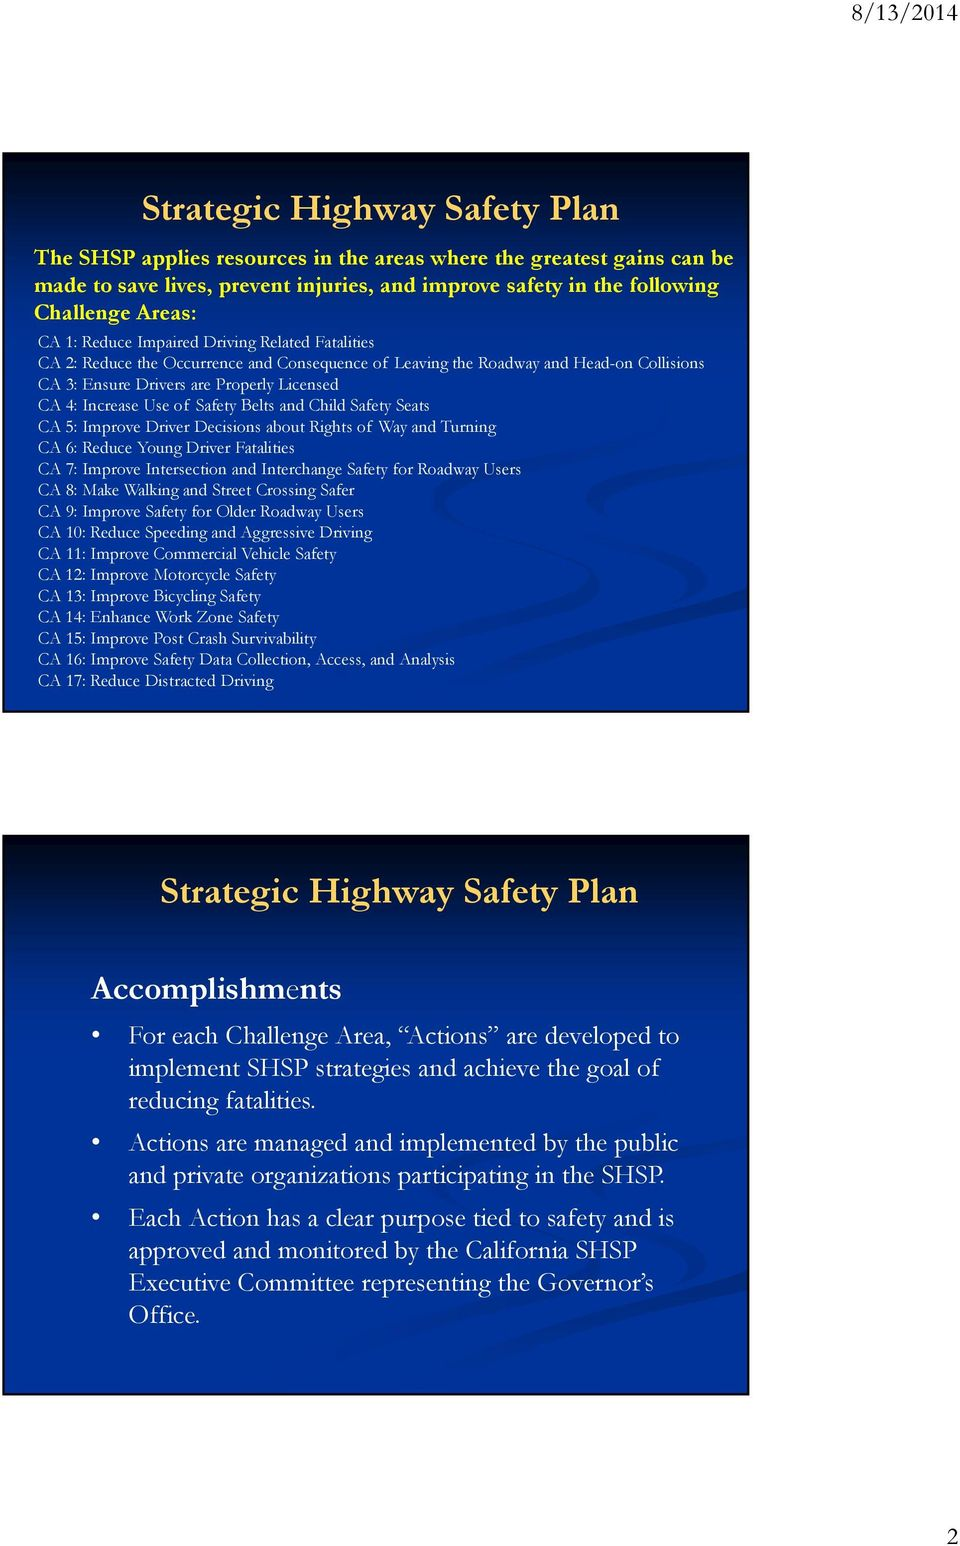 Safety Belts and Child Safety Seats CA 5: Improve Driver Decisions about Rights of Way and Turning CA 6: Reduce Young Driver Fatalities CA 7: Improve Intersection and Interchange Safety for Roadway